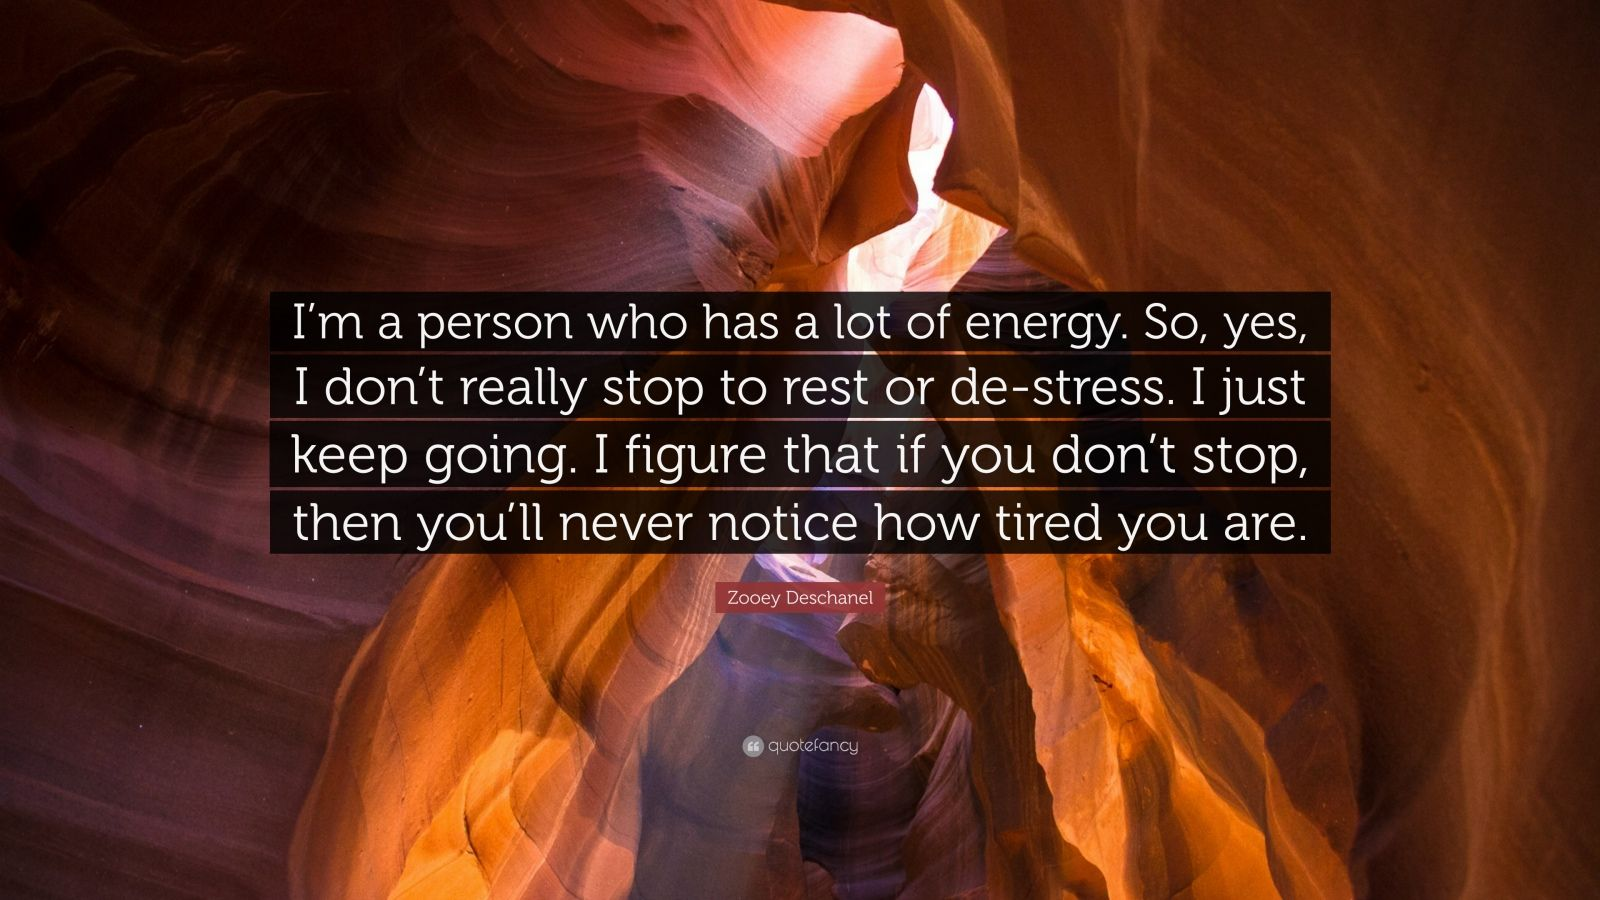 """Zooey Deschanel Quote: """"I'm a person who has a lot of energy. So, yes, I don't really stop to rest or de-stress. I just keep going. I figure that if you don't stop, then you'll never notice how tired you are."""""""